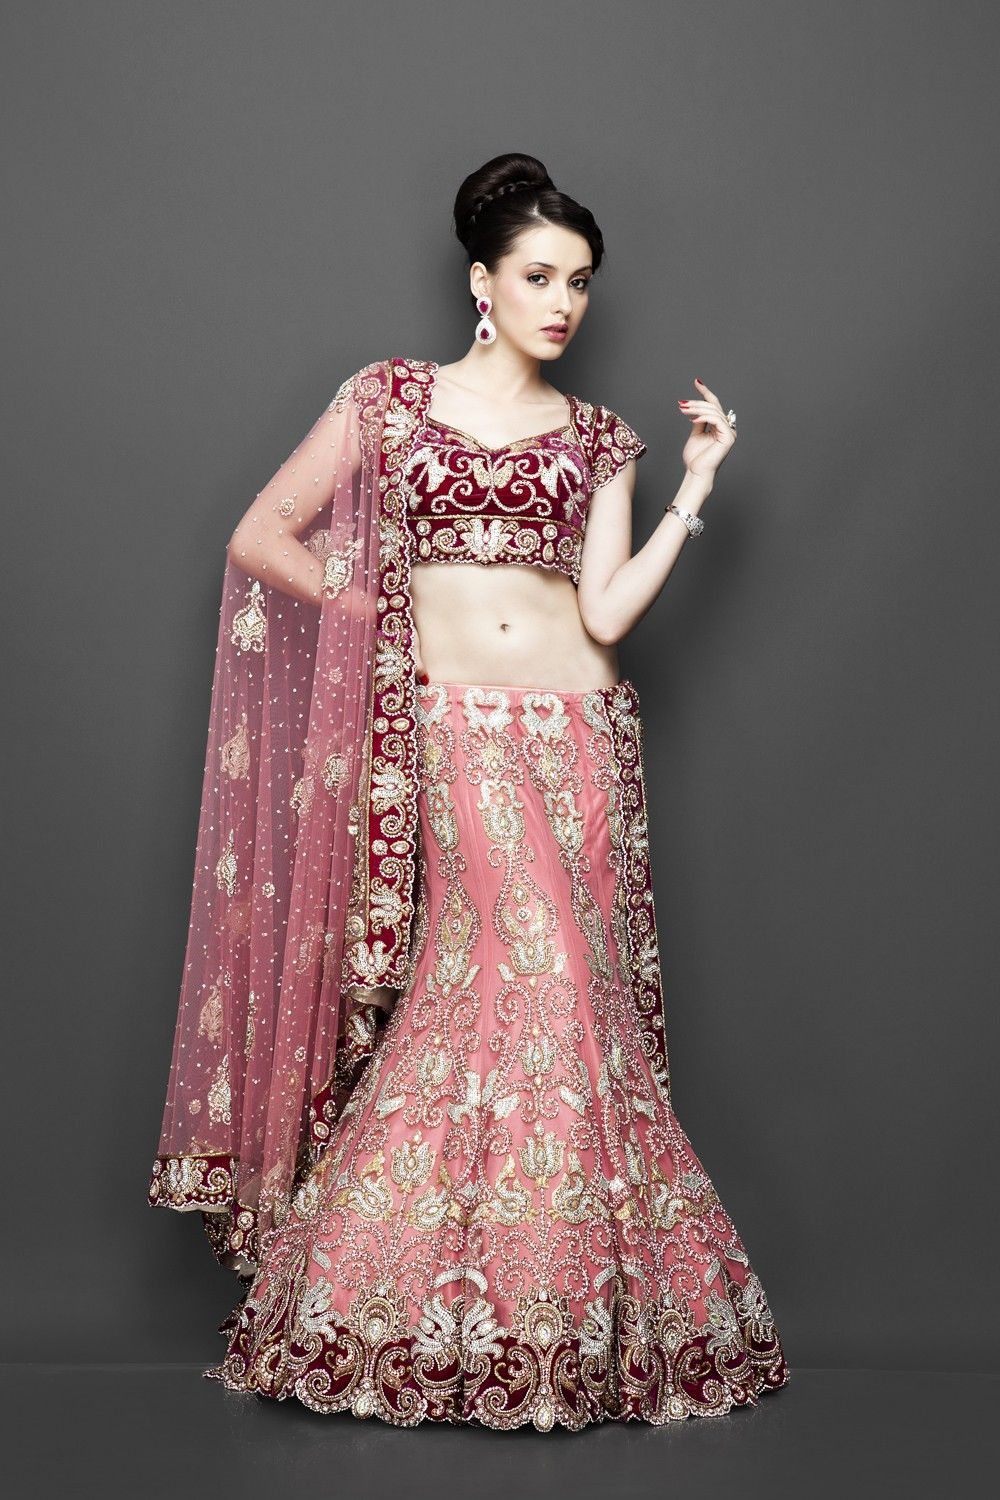 South asian wedding dresses  Peachpink lehenga with velvet blouse  South Asian Glamour